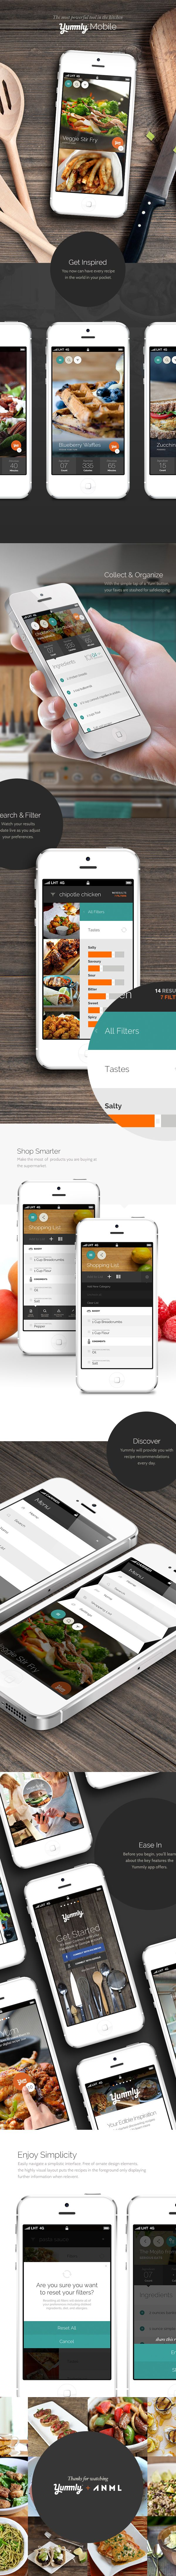 Yummly puts every recipe in the world in your pocket. The most powerful recipe search, the recipe sites you love, your digital recipe box, recipe recommendations just for you, and a smart shopping list.Working as extension of the Yummly team ANML was re…